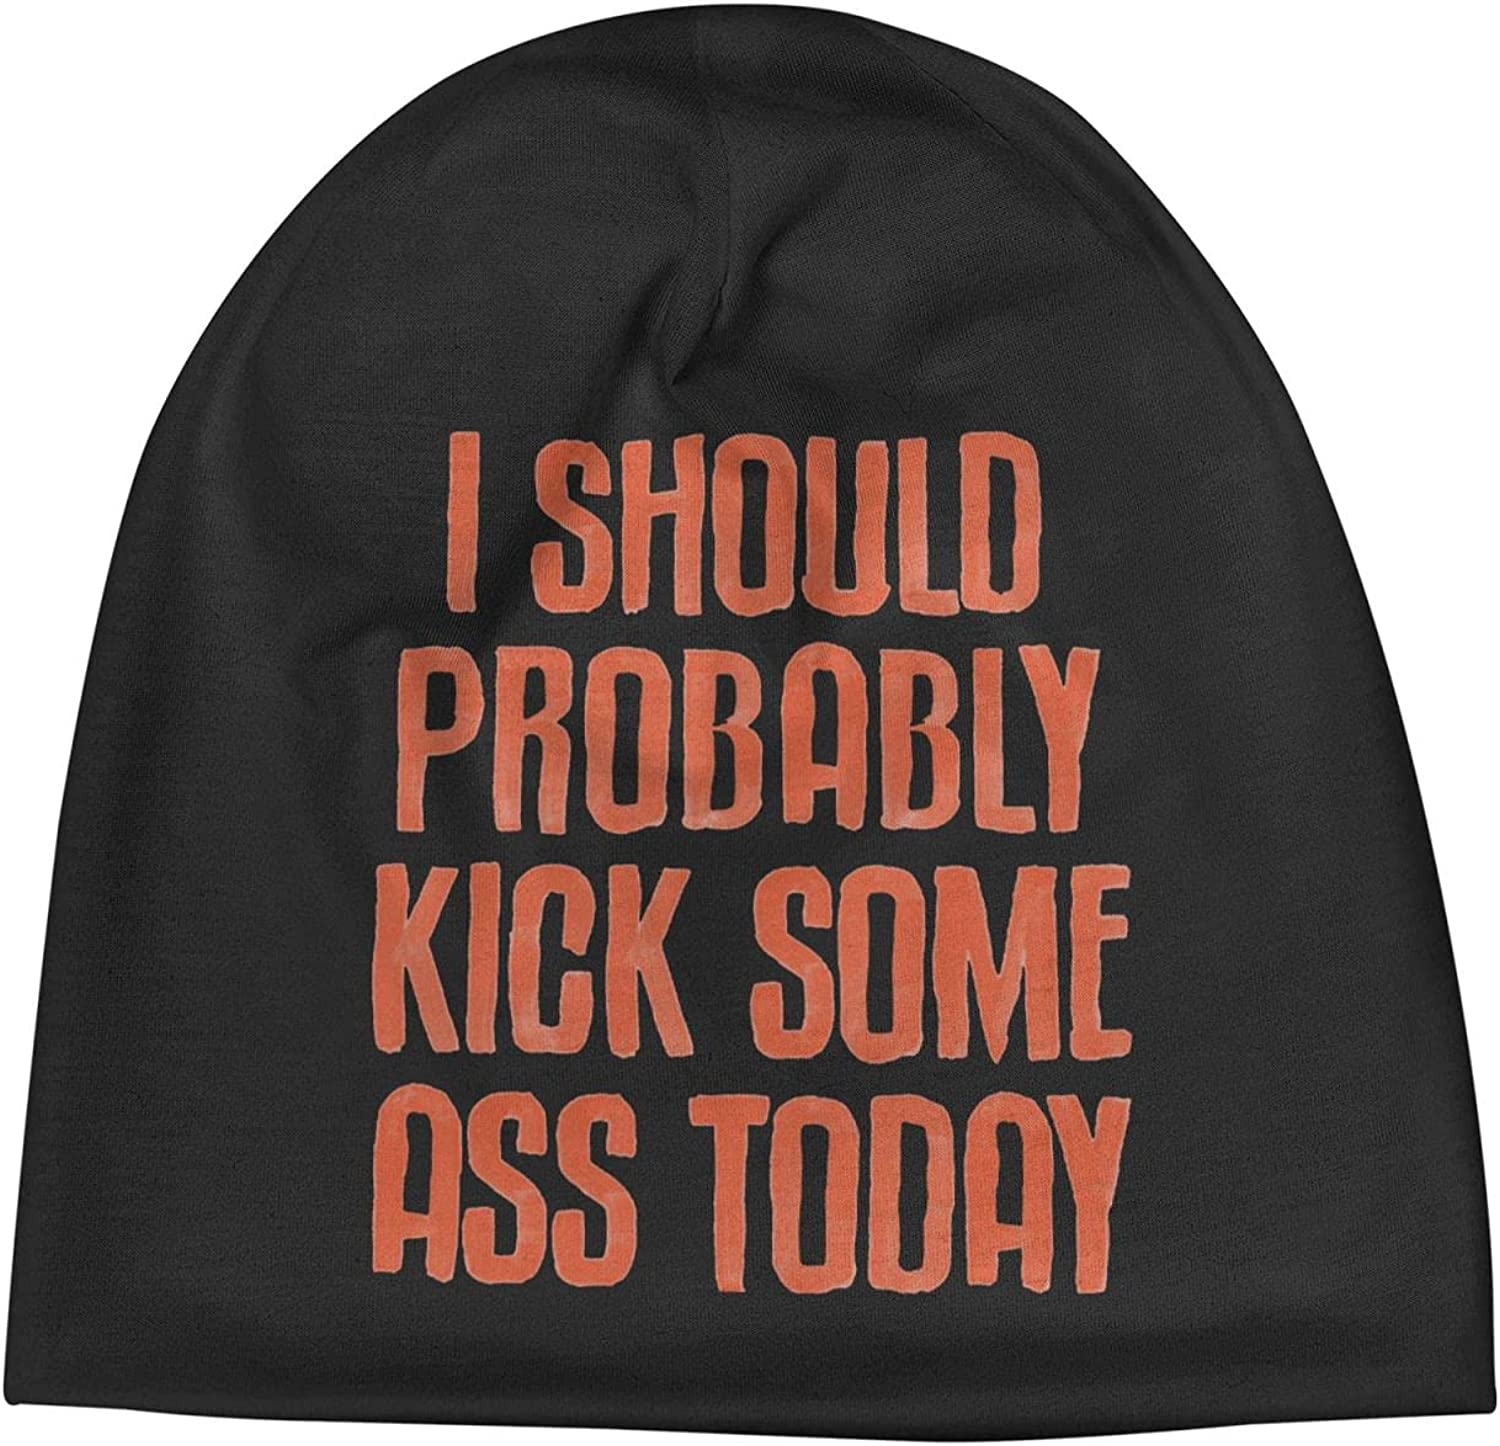 I Should Probably Mail order Kick Some Ass Unisex Slogan Cap Beanie Max 60% OFF Today3